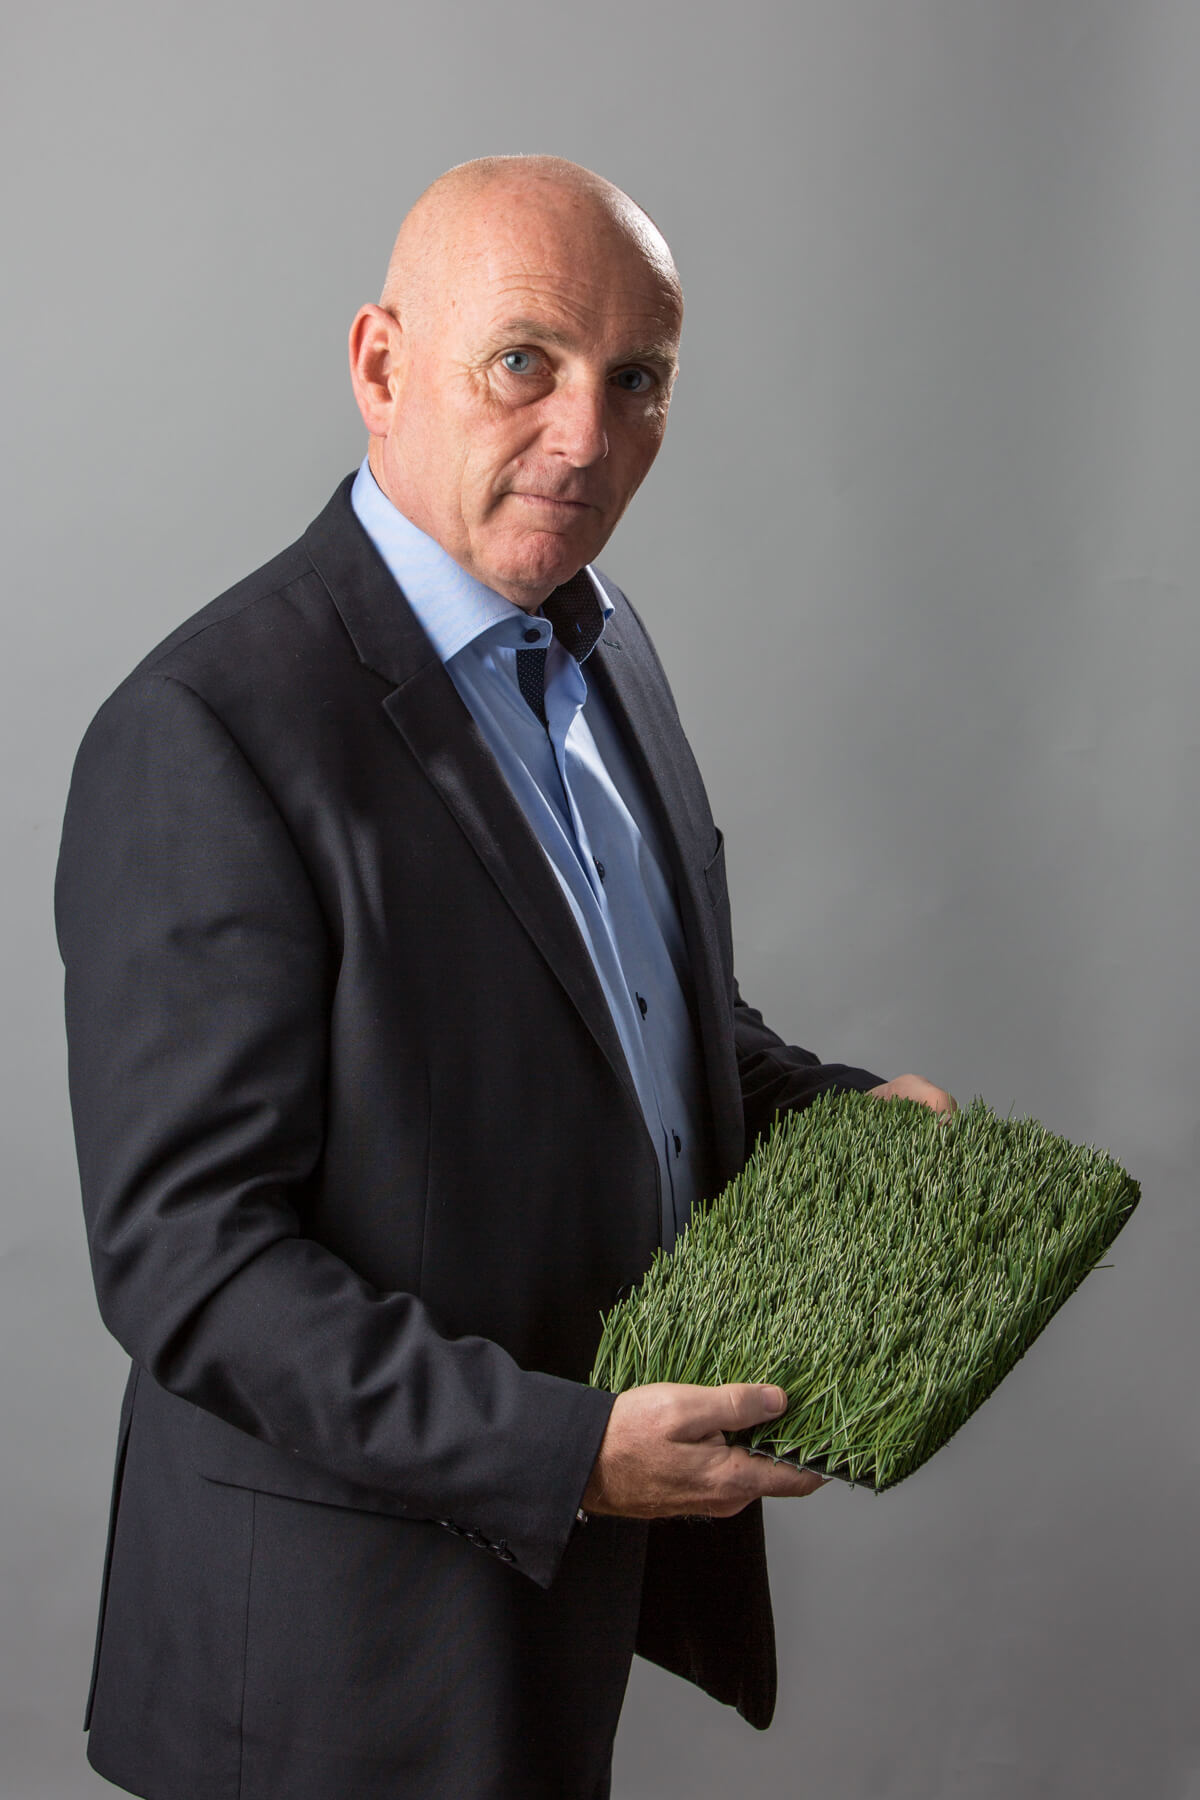 ccgrass Synthetic-turf manufacturer new European office ceo